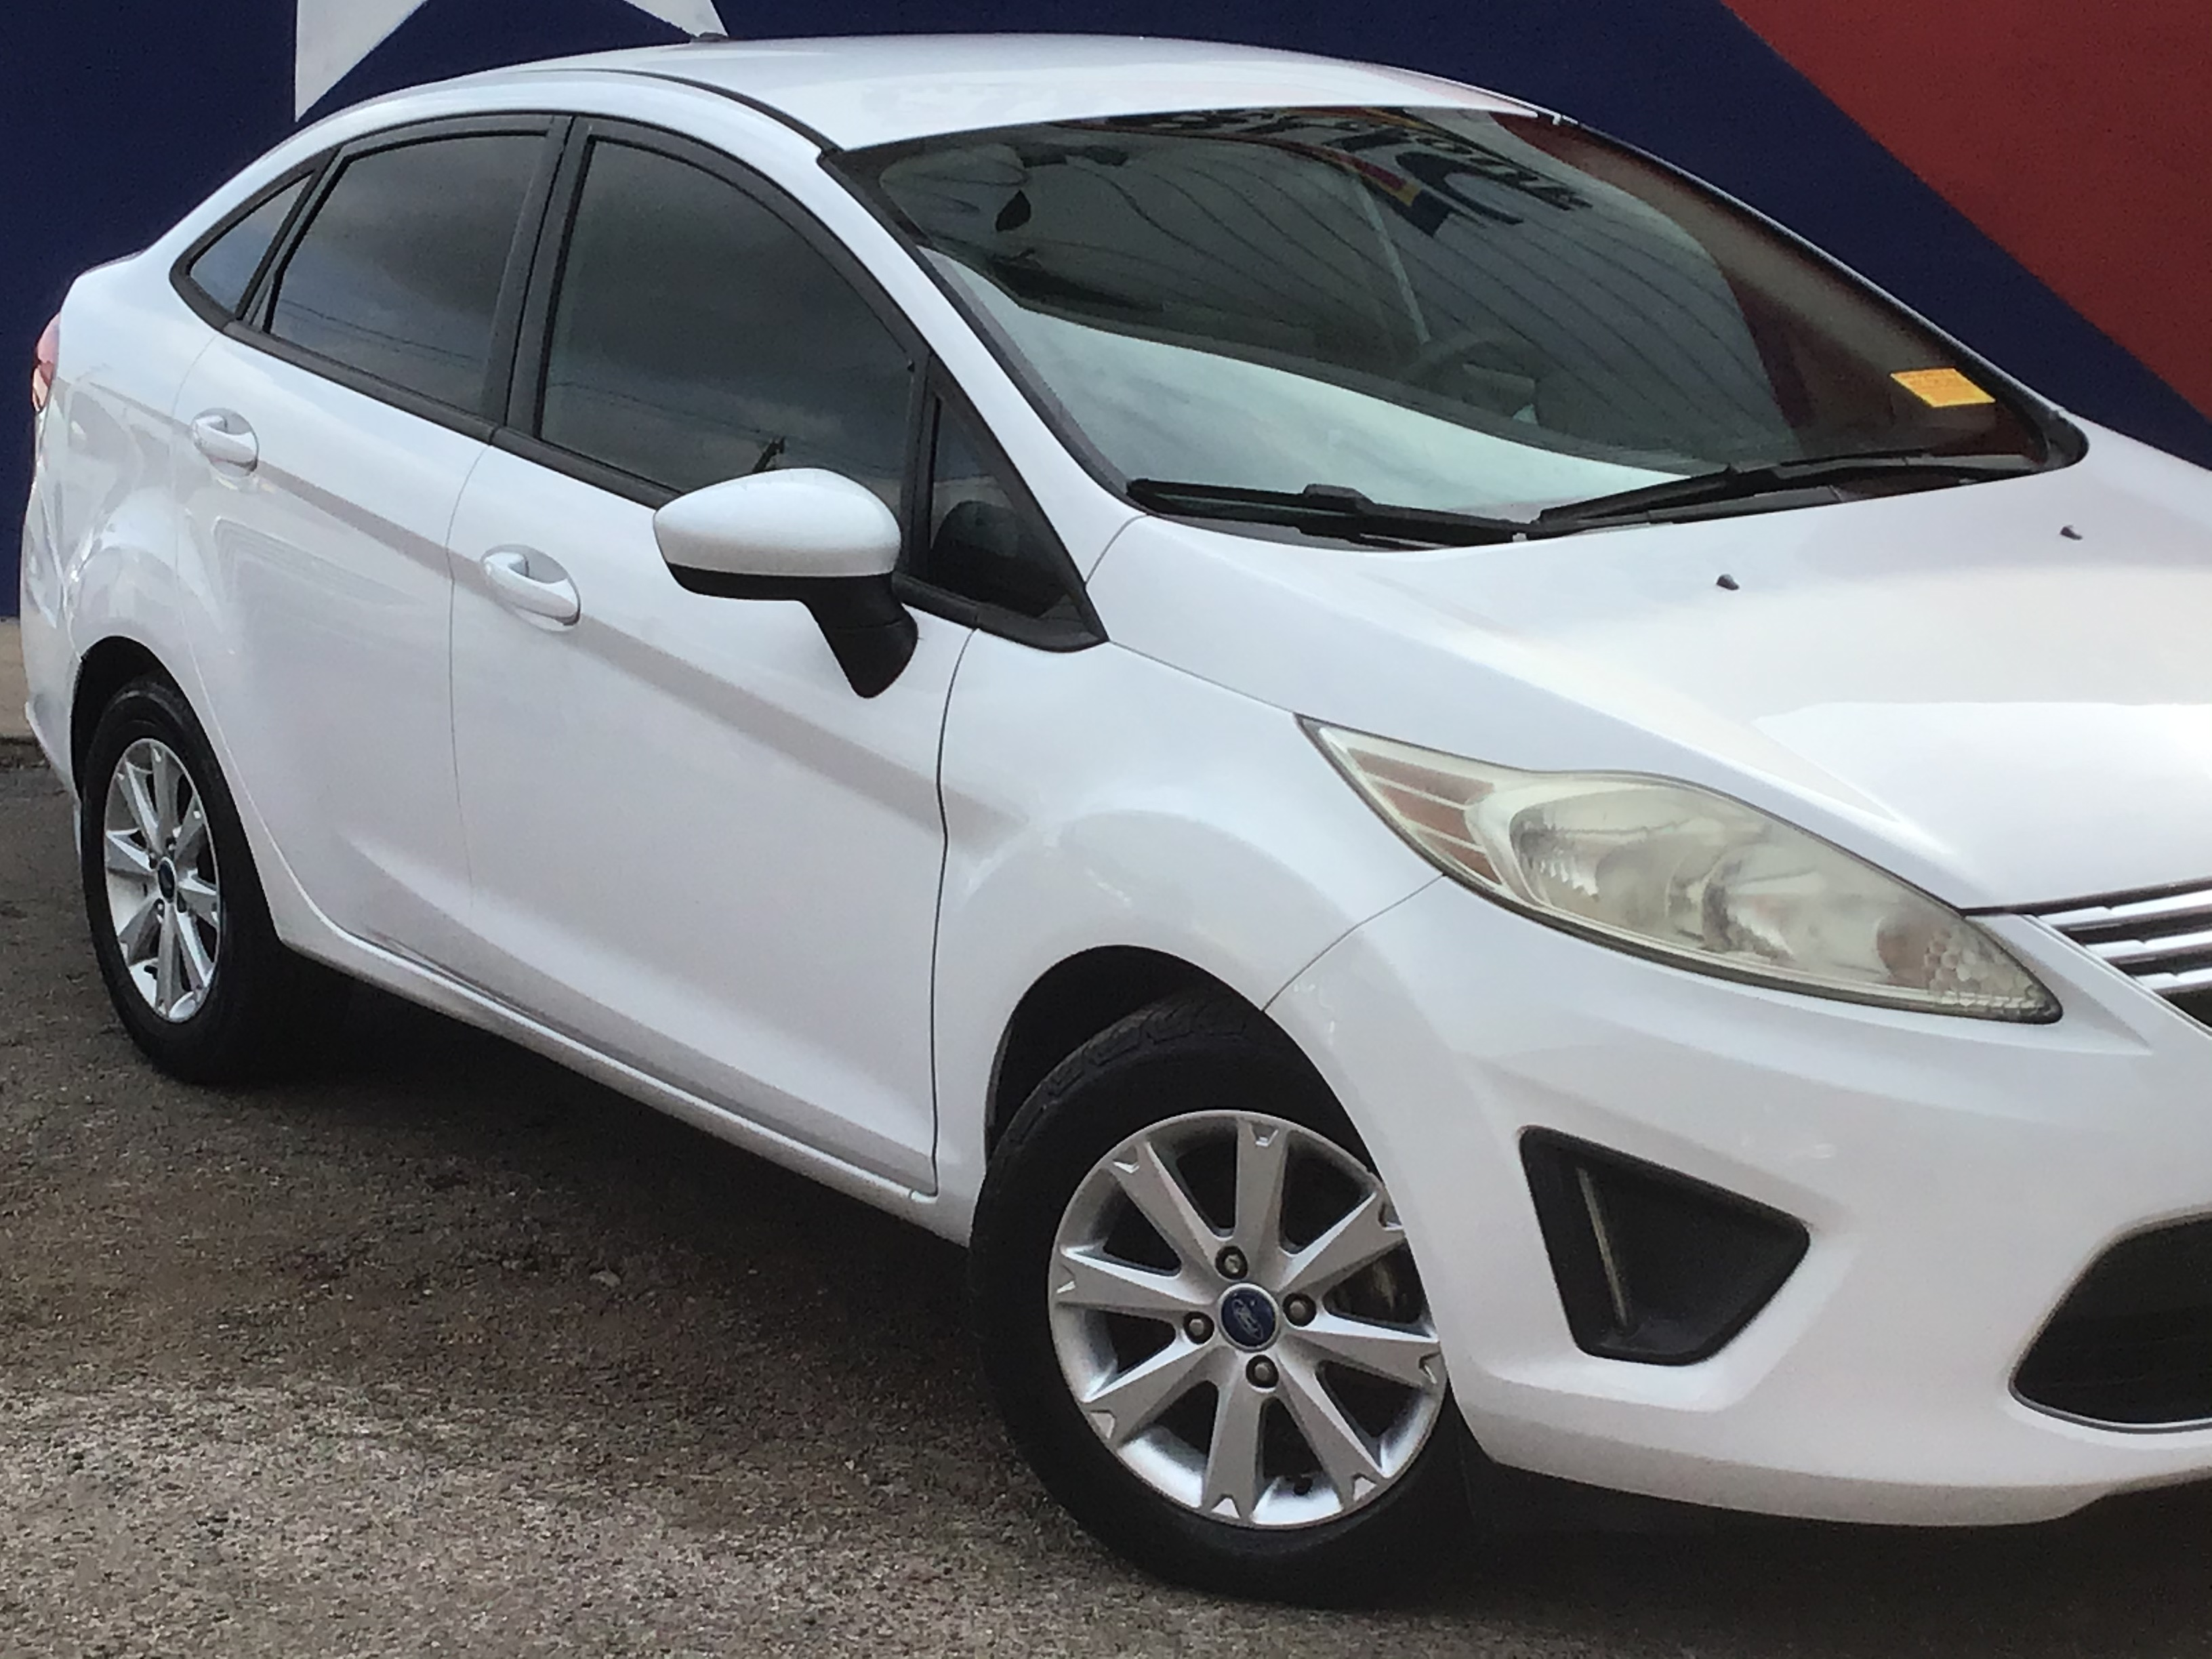 used vehicle - 4 door FORD FIESTA 2011